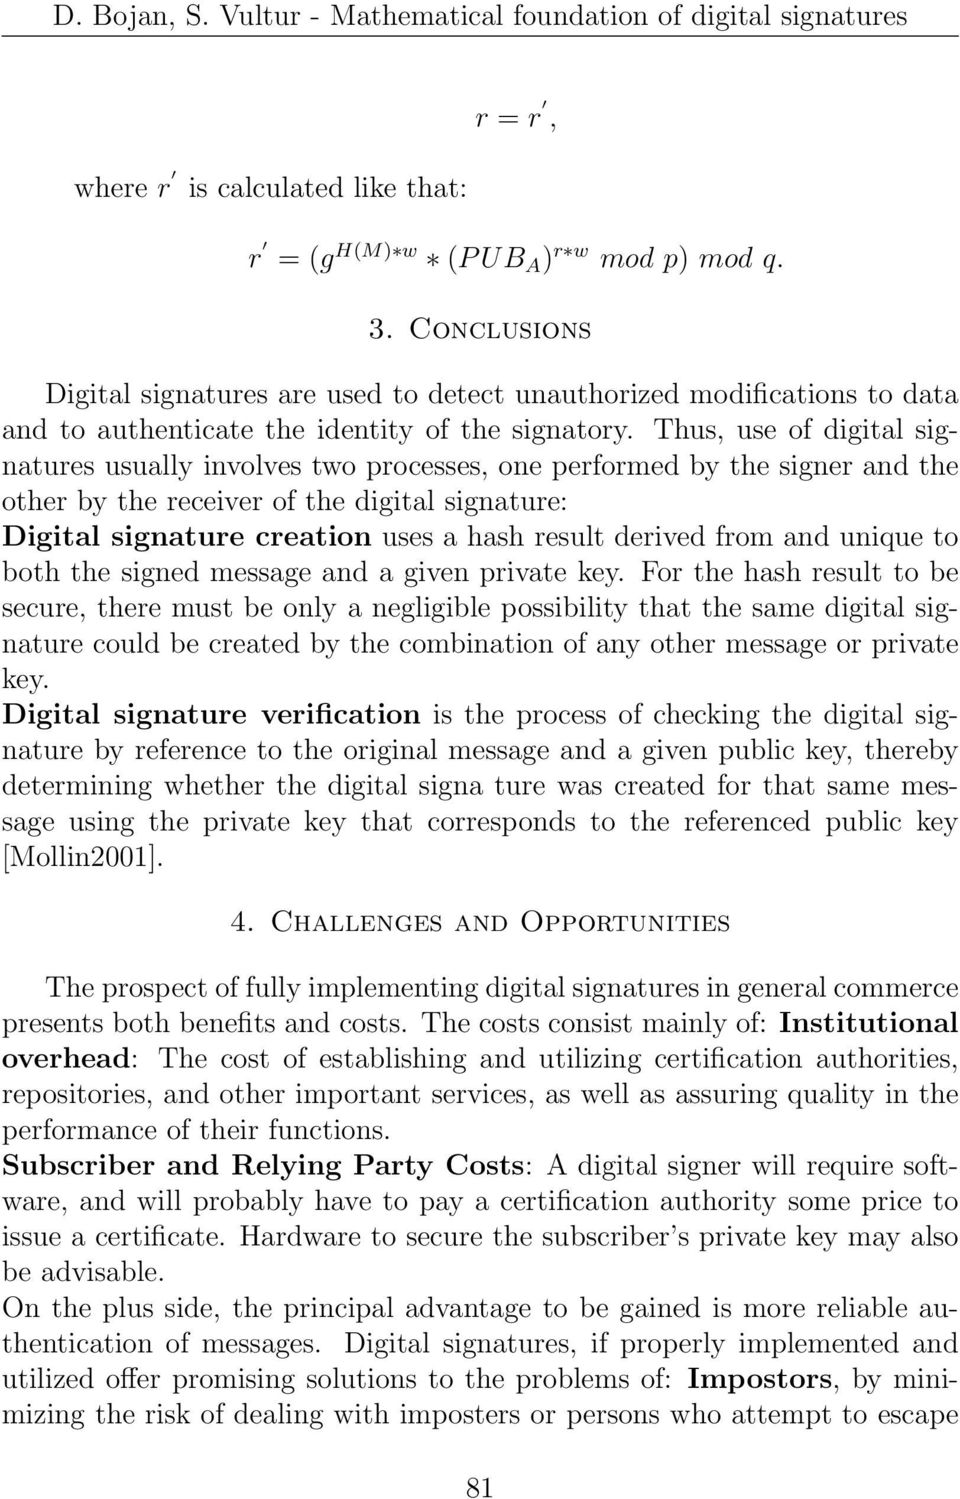 Thus, use of digital signatures usually involves two processes, one performed by the signer and the other by the receiver of the digital signature: Digital signature creation uses a hash result